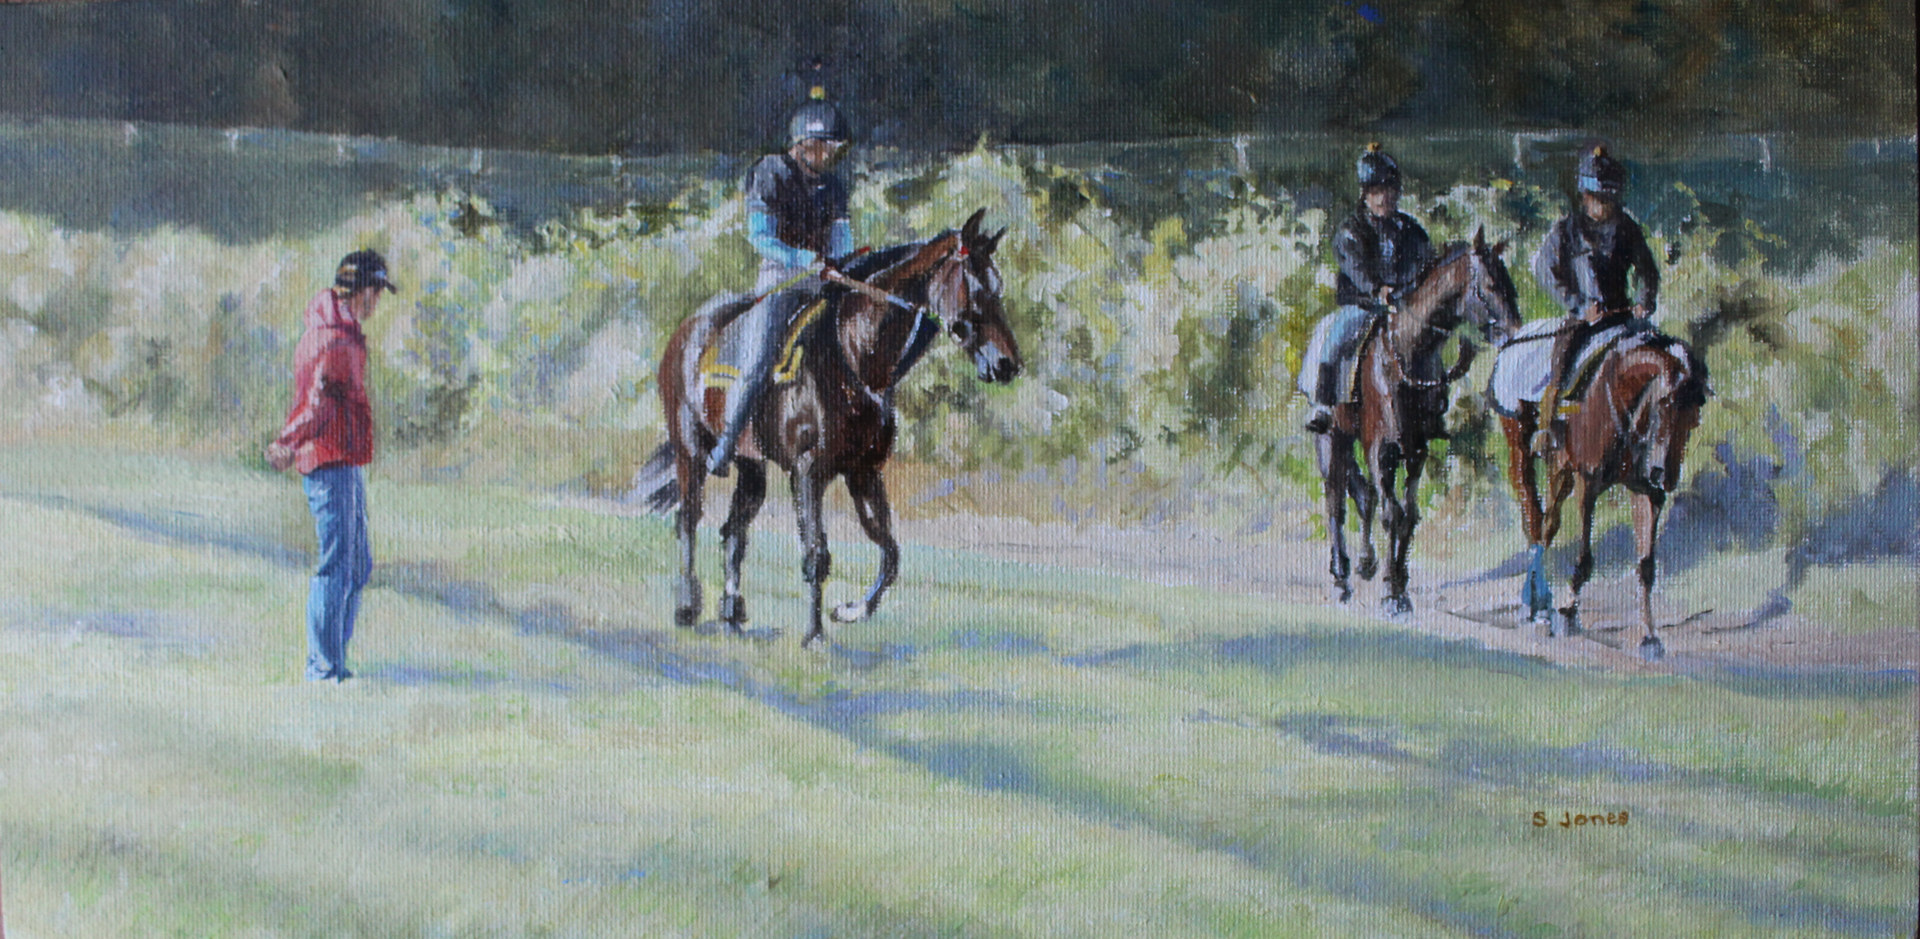 coming off the gallops